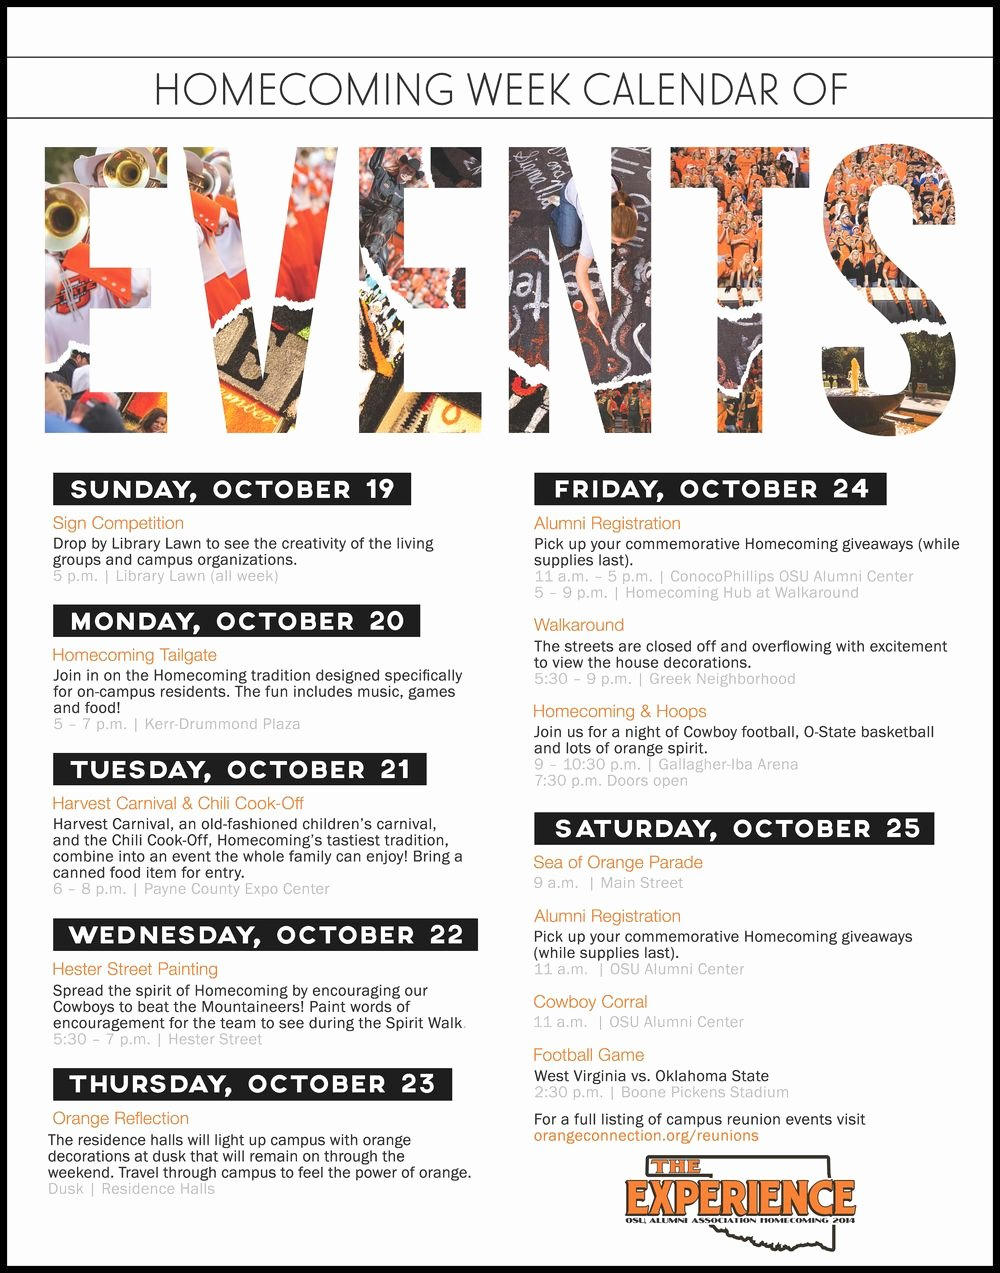 Schedule Of events Template Luxury Schedule Of events Flyer Google Search